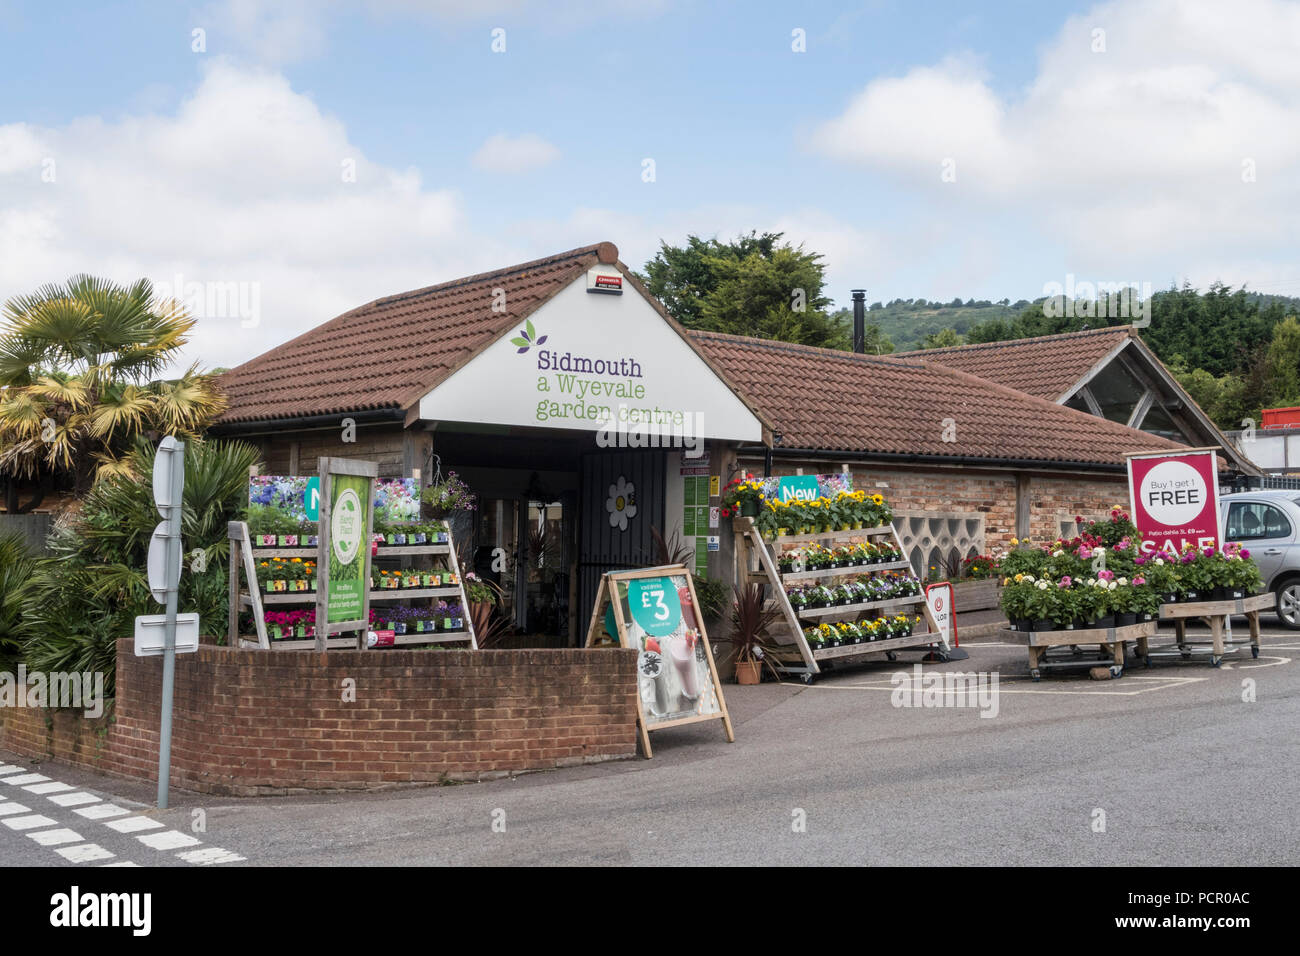 Wyevale garden centre, Sidmouth. The Wyevale chain, including the Sidmouth store, is up for sale. - Stock Image